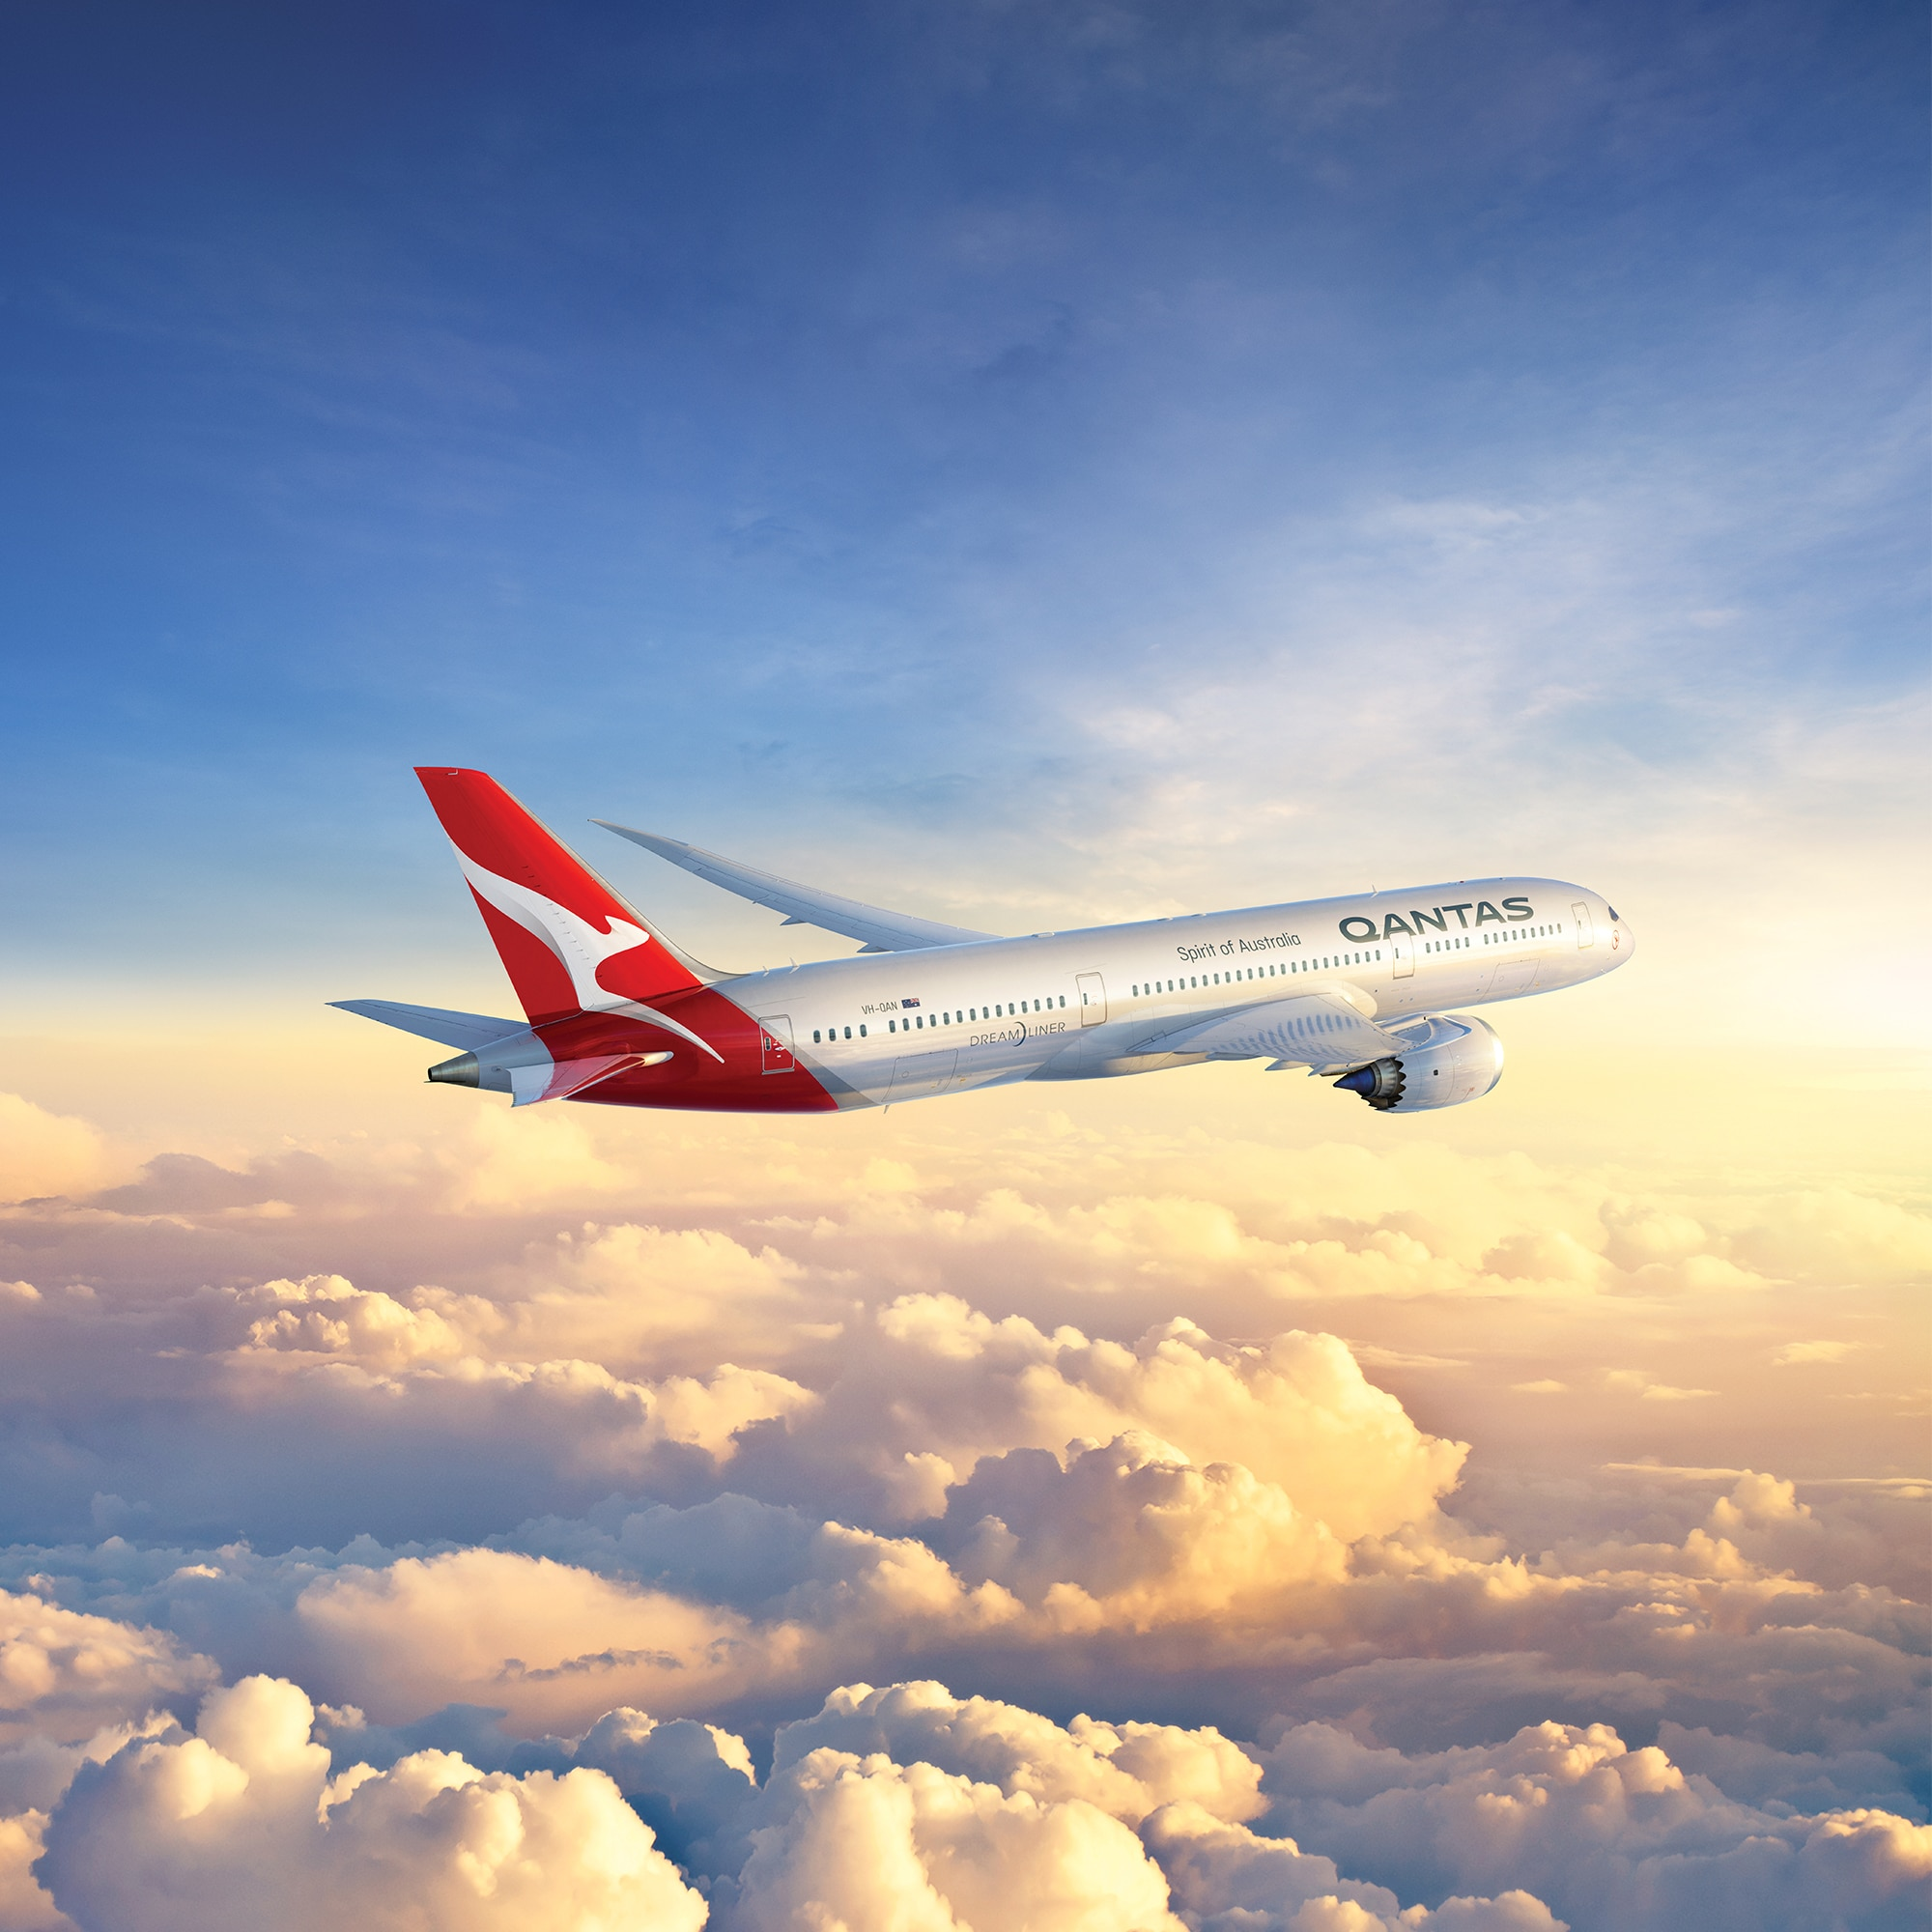 Qantas Airways (QF) Flights: AU$947 Flight Tickets & Deals